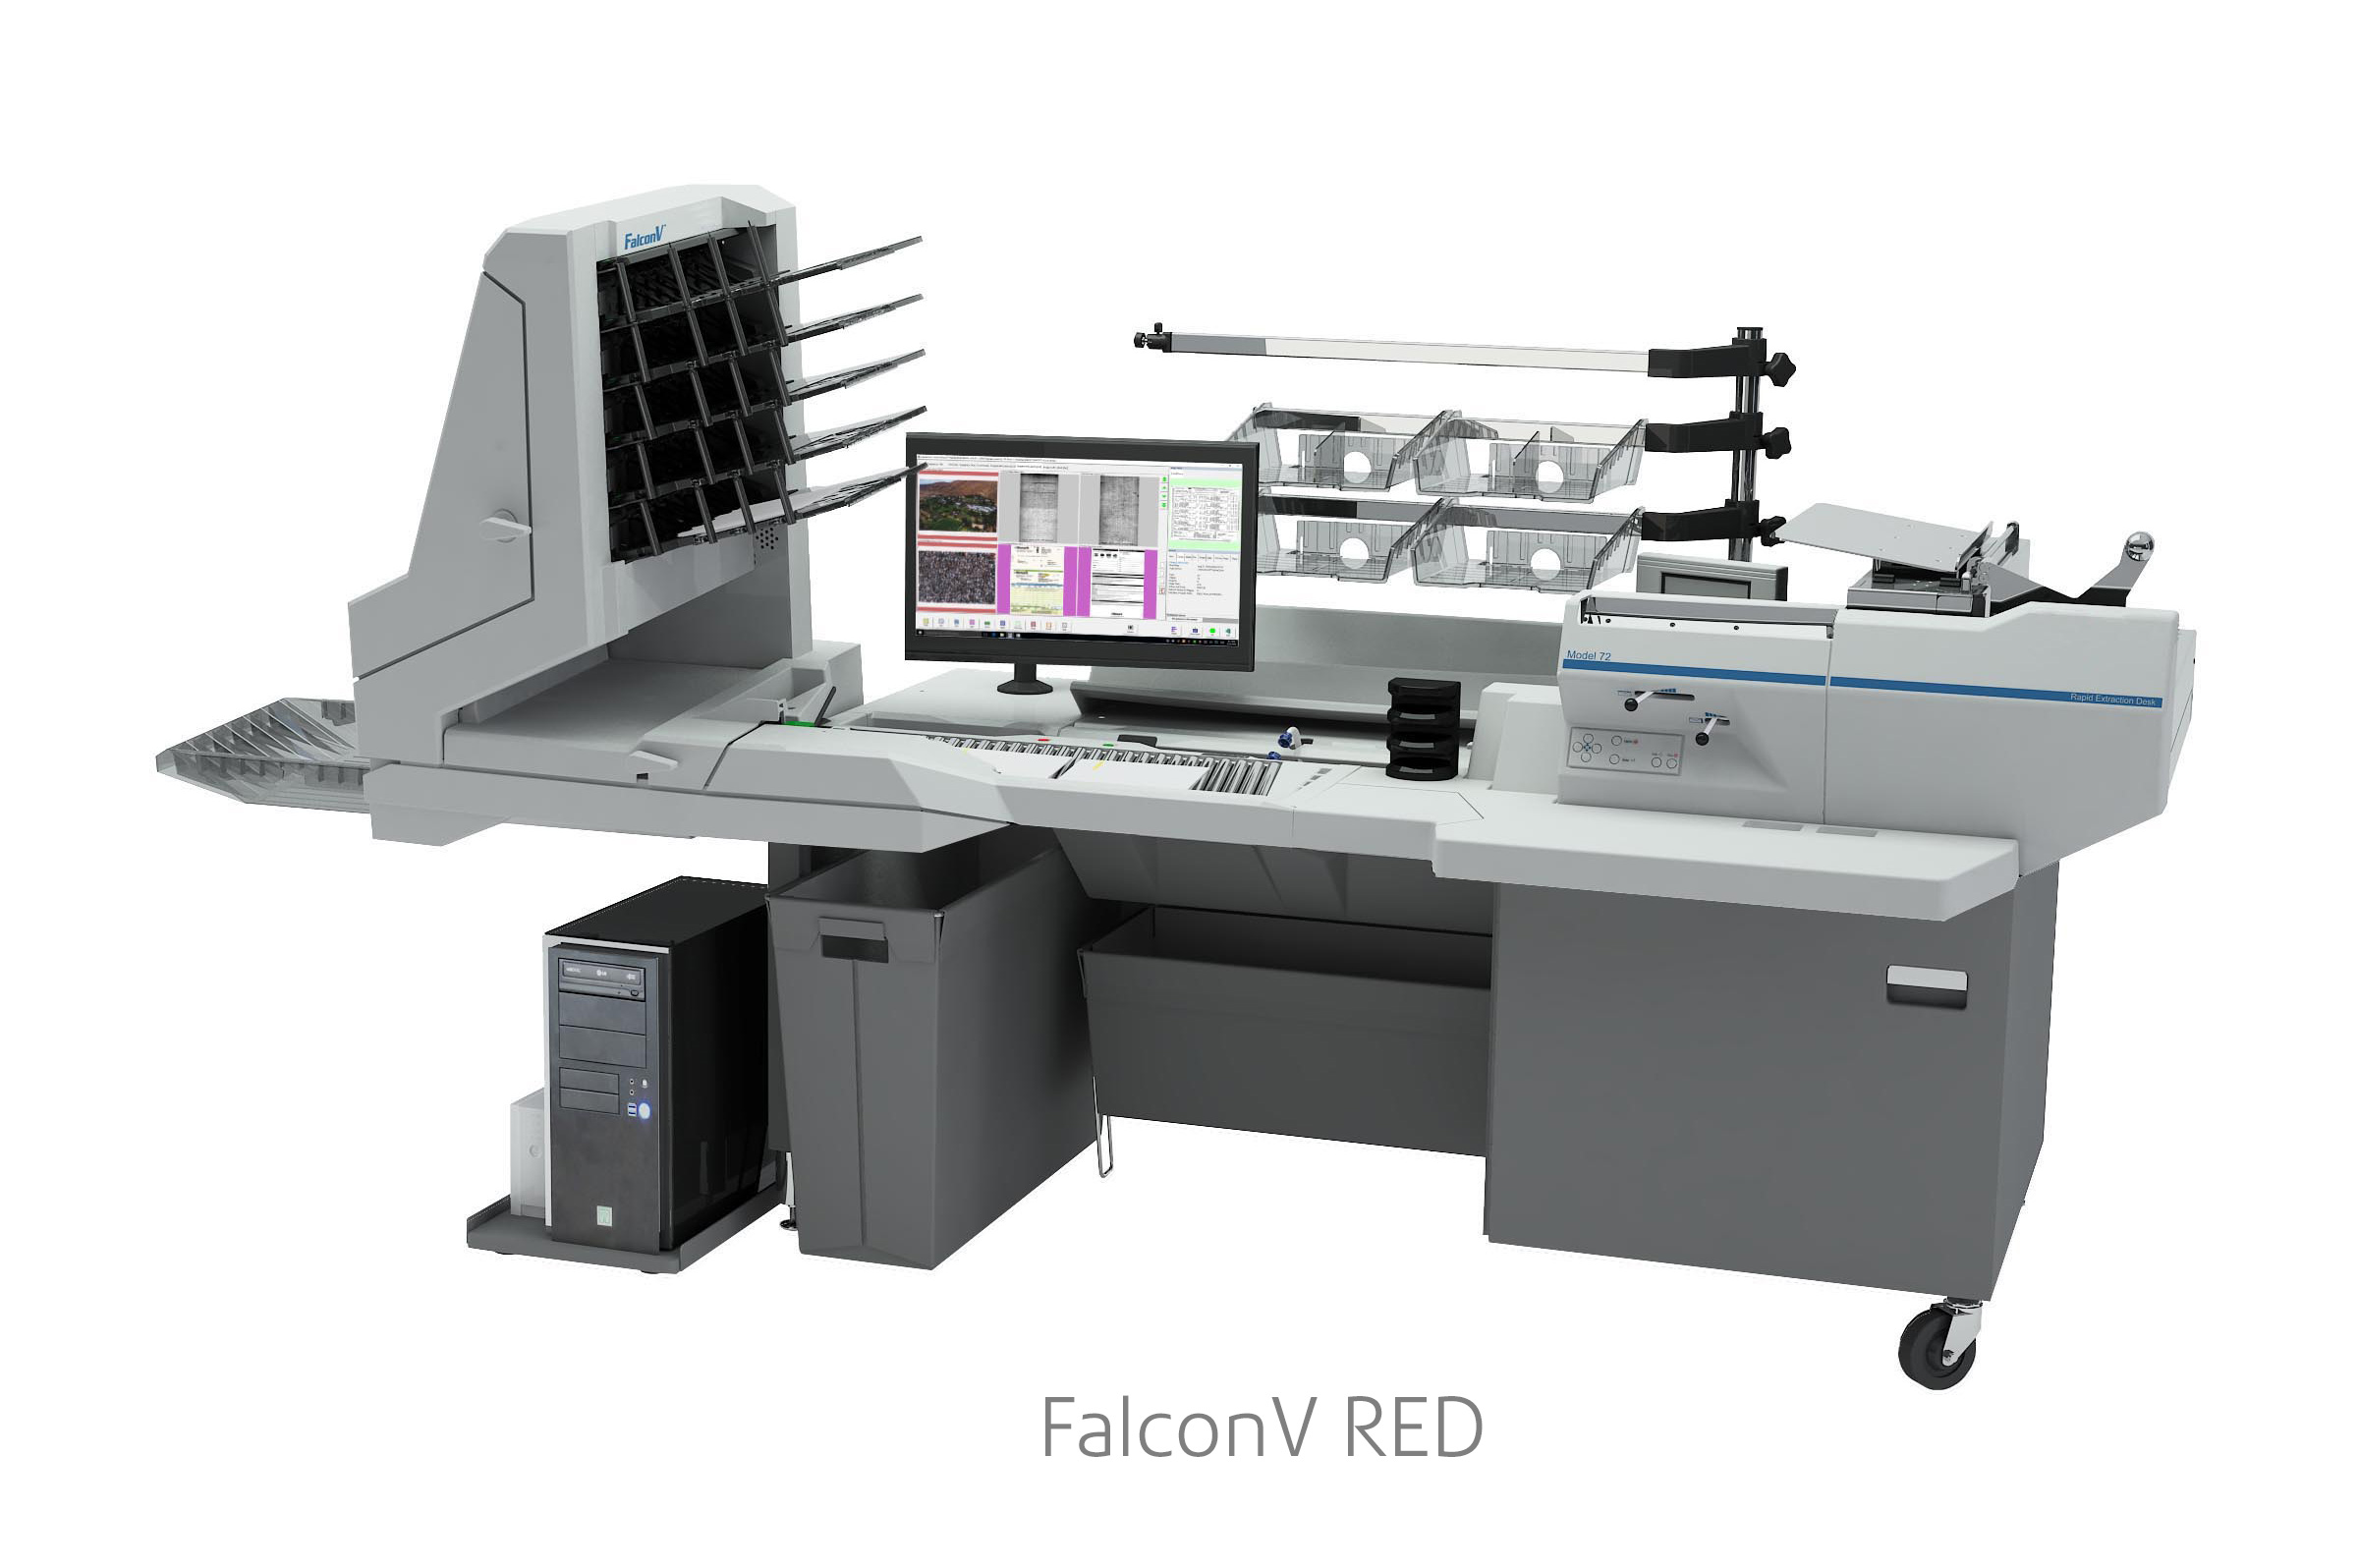 FalconV RED